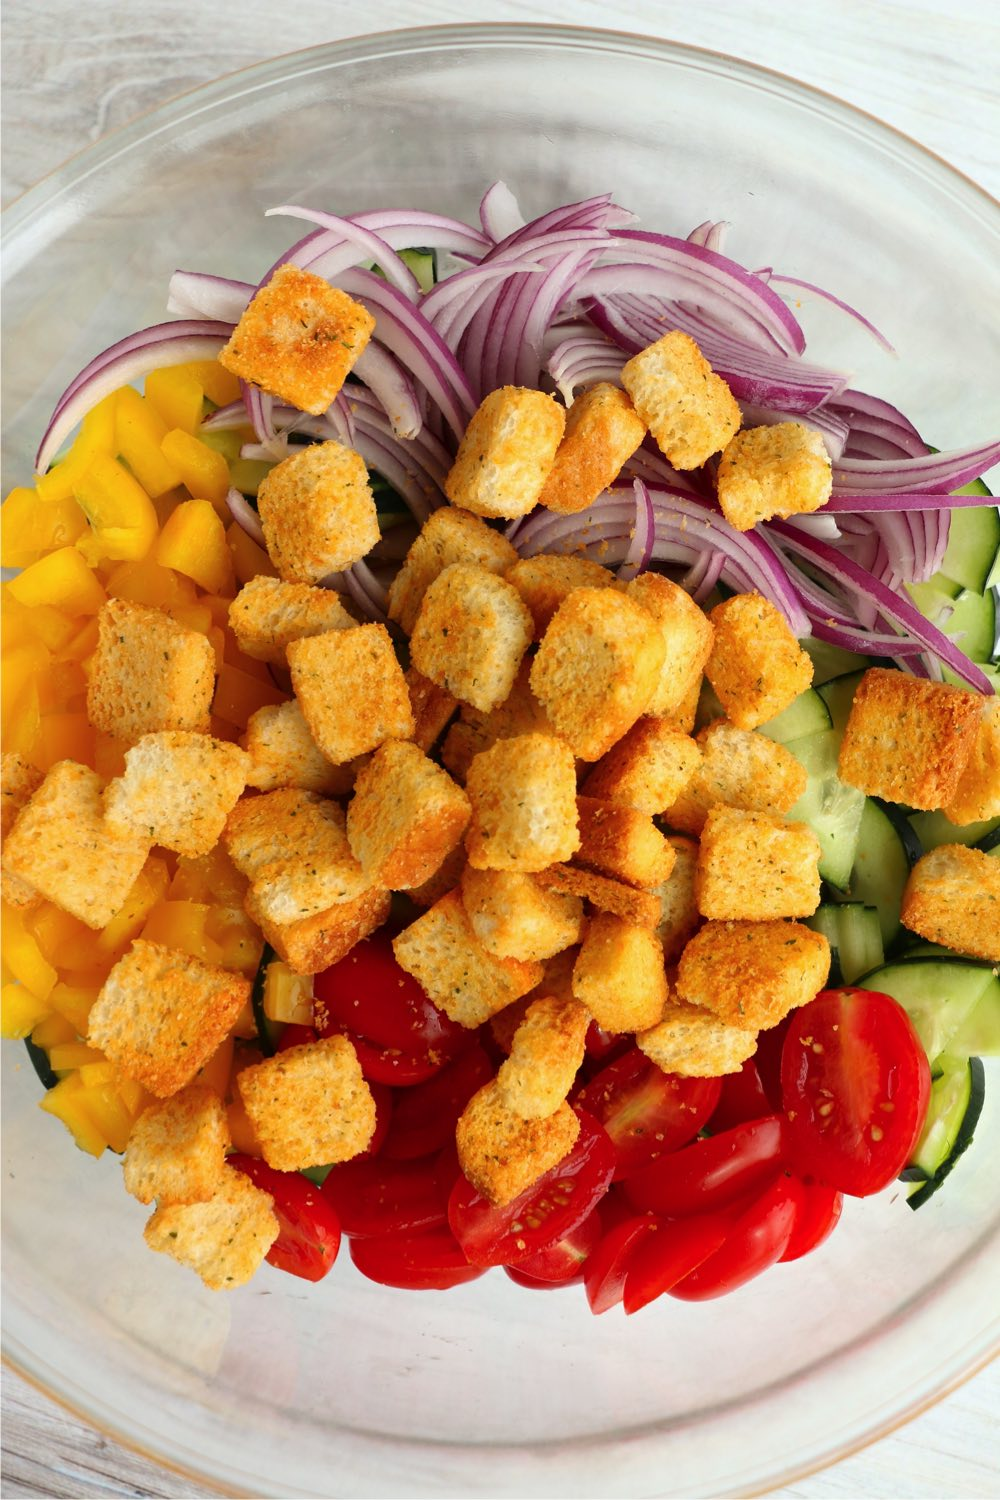 Salad with croutons on top